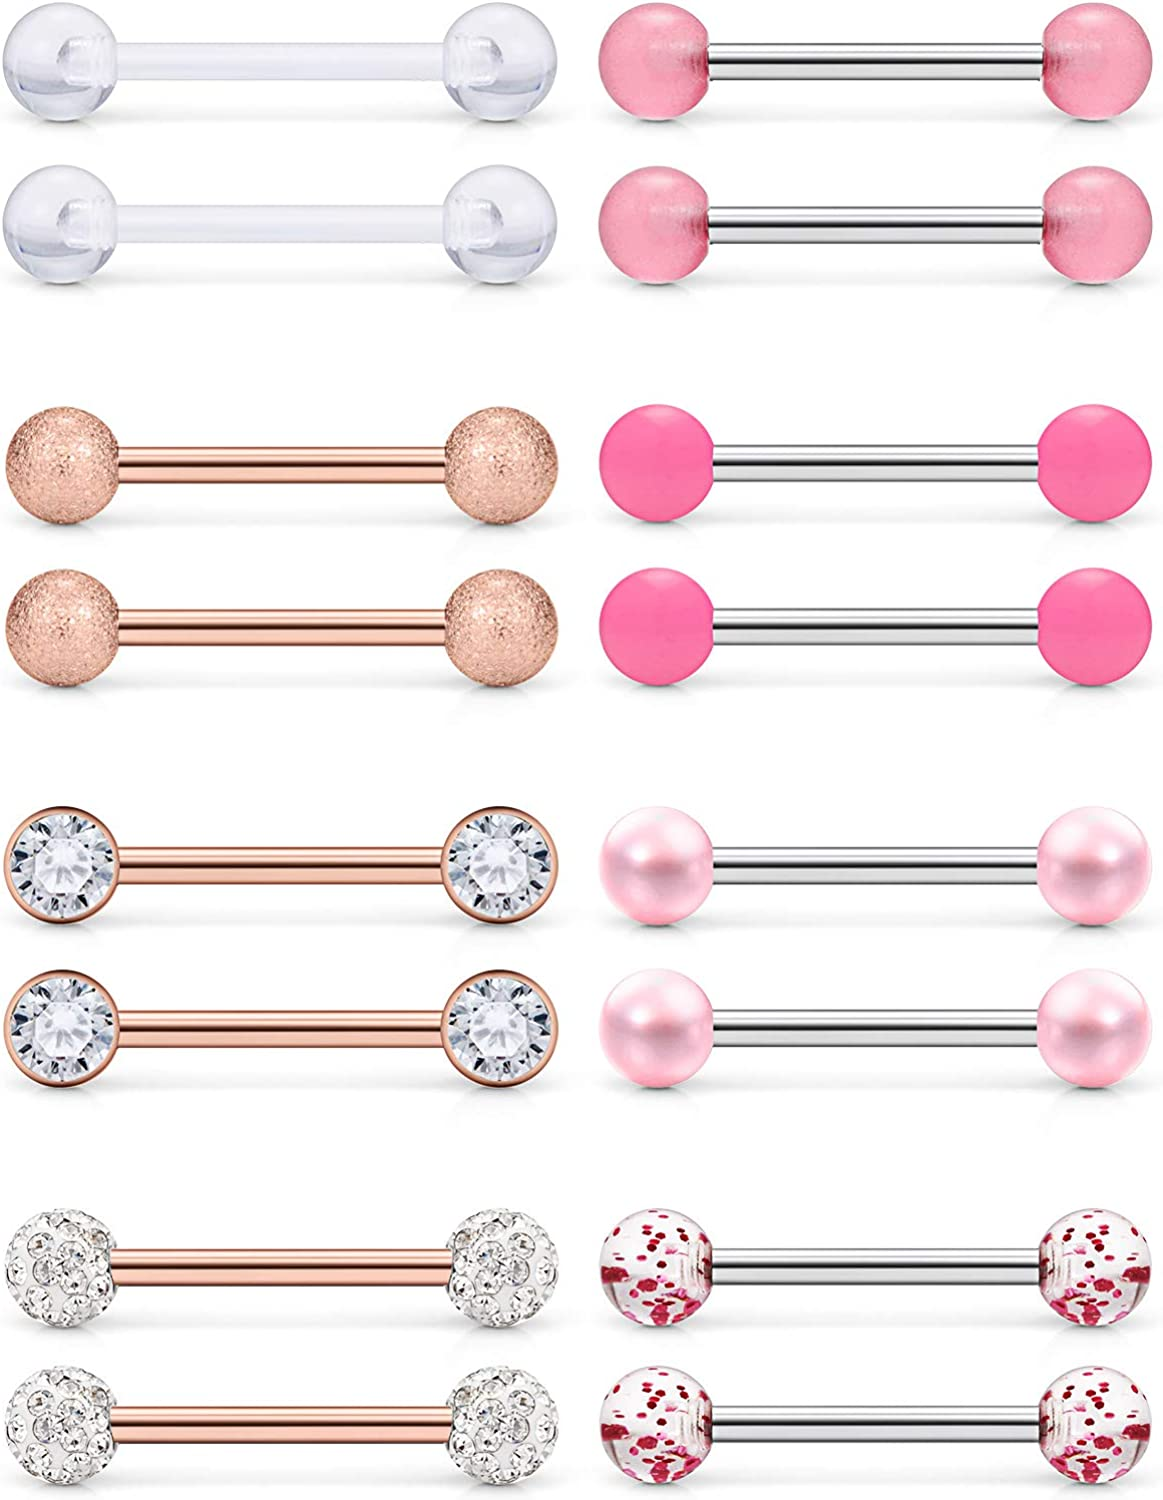 Prjndjw 8Pairs 14G 16G Nipple Rings Surgical Steel Tongue Rings Barbell Nipplering Diamond CZ Body Piercing Jewelry Retainer for Women Men 14mm Length Size